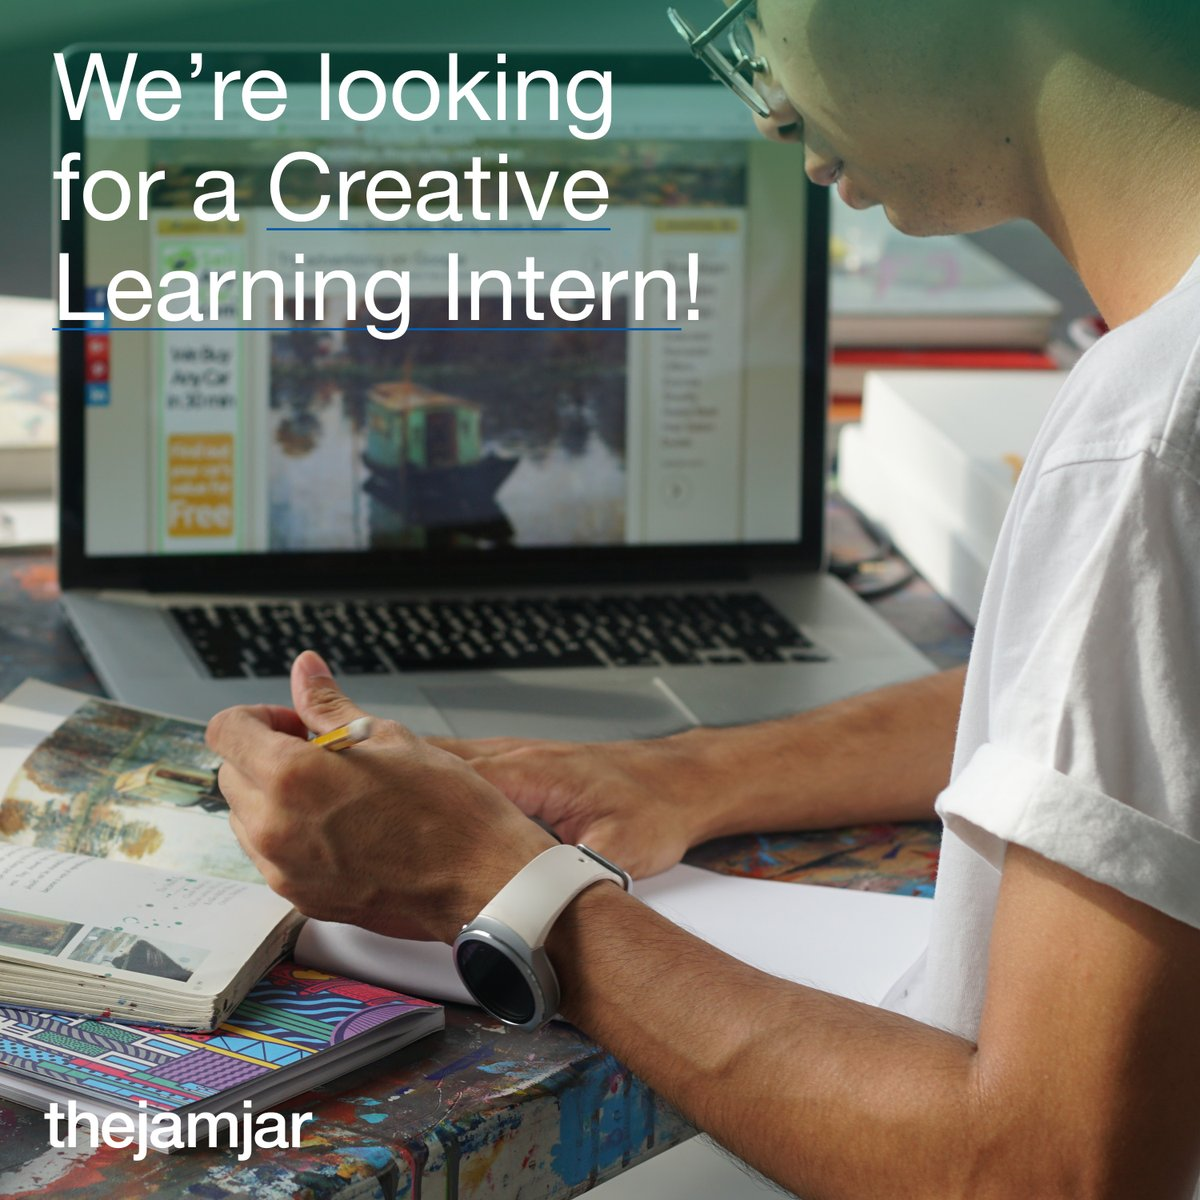 We're looking for a Creative Learning Intern to join us this March!  The intern will help create lesson plans and assist with school workshops.  . Timings: Sundays-Thursdays, 8am-1pm . Email your CV and portfolio to learning@thejamjardubai.com . #thejamjardubai #dubai #uae